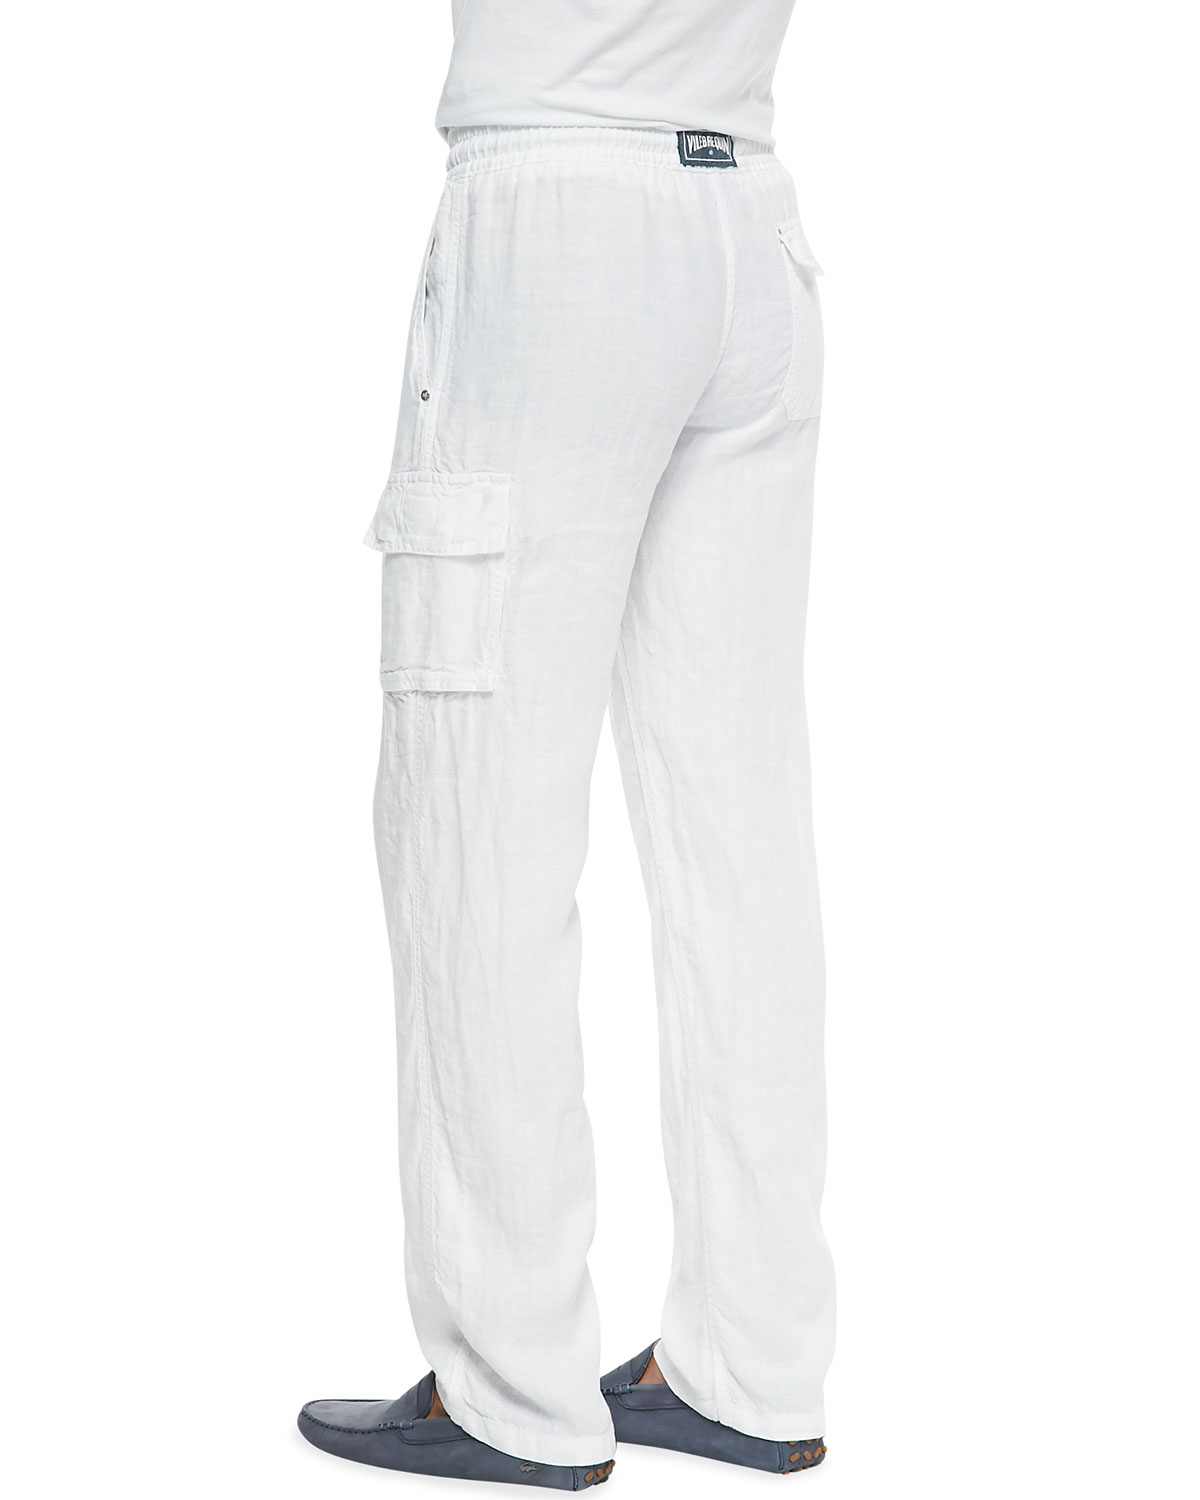 Lyst Vilebrequin Linen Cargo Pants In White For Men